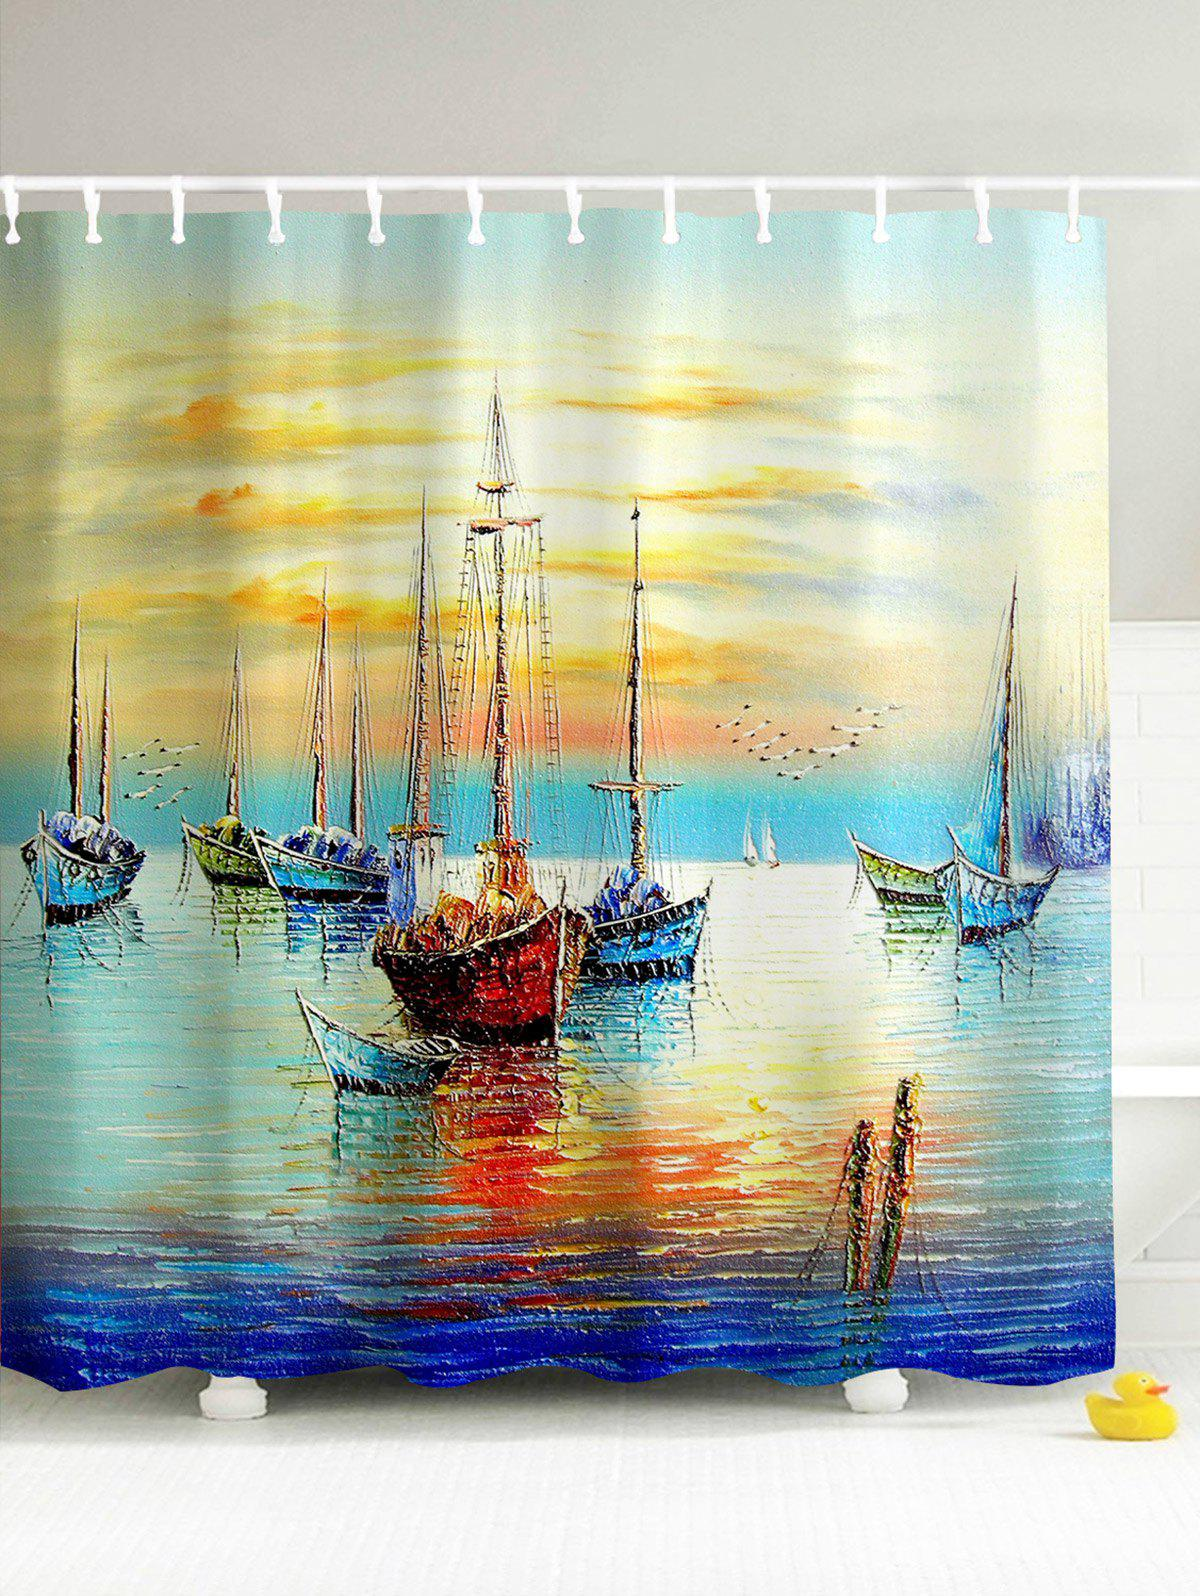 Sailing Oceangoing Voyage 3D Print Shower Curtain